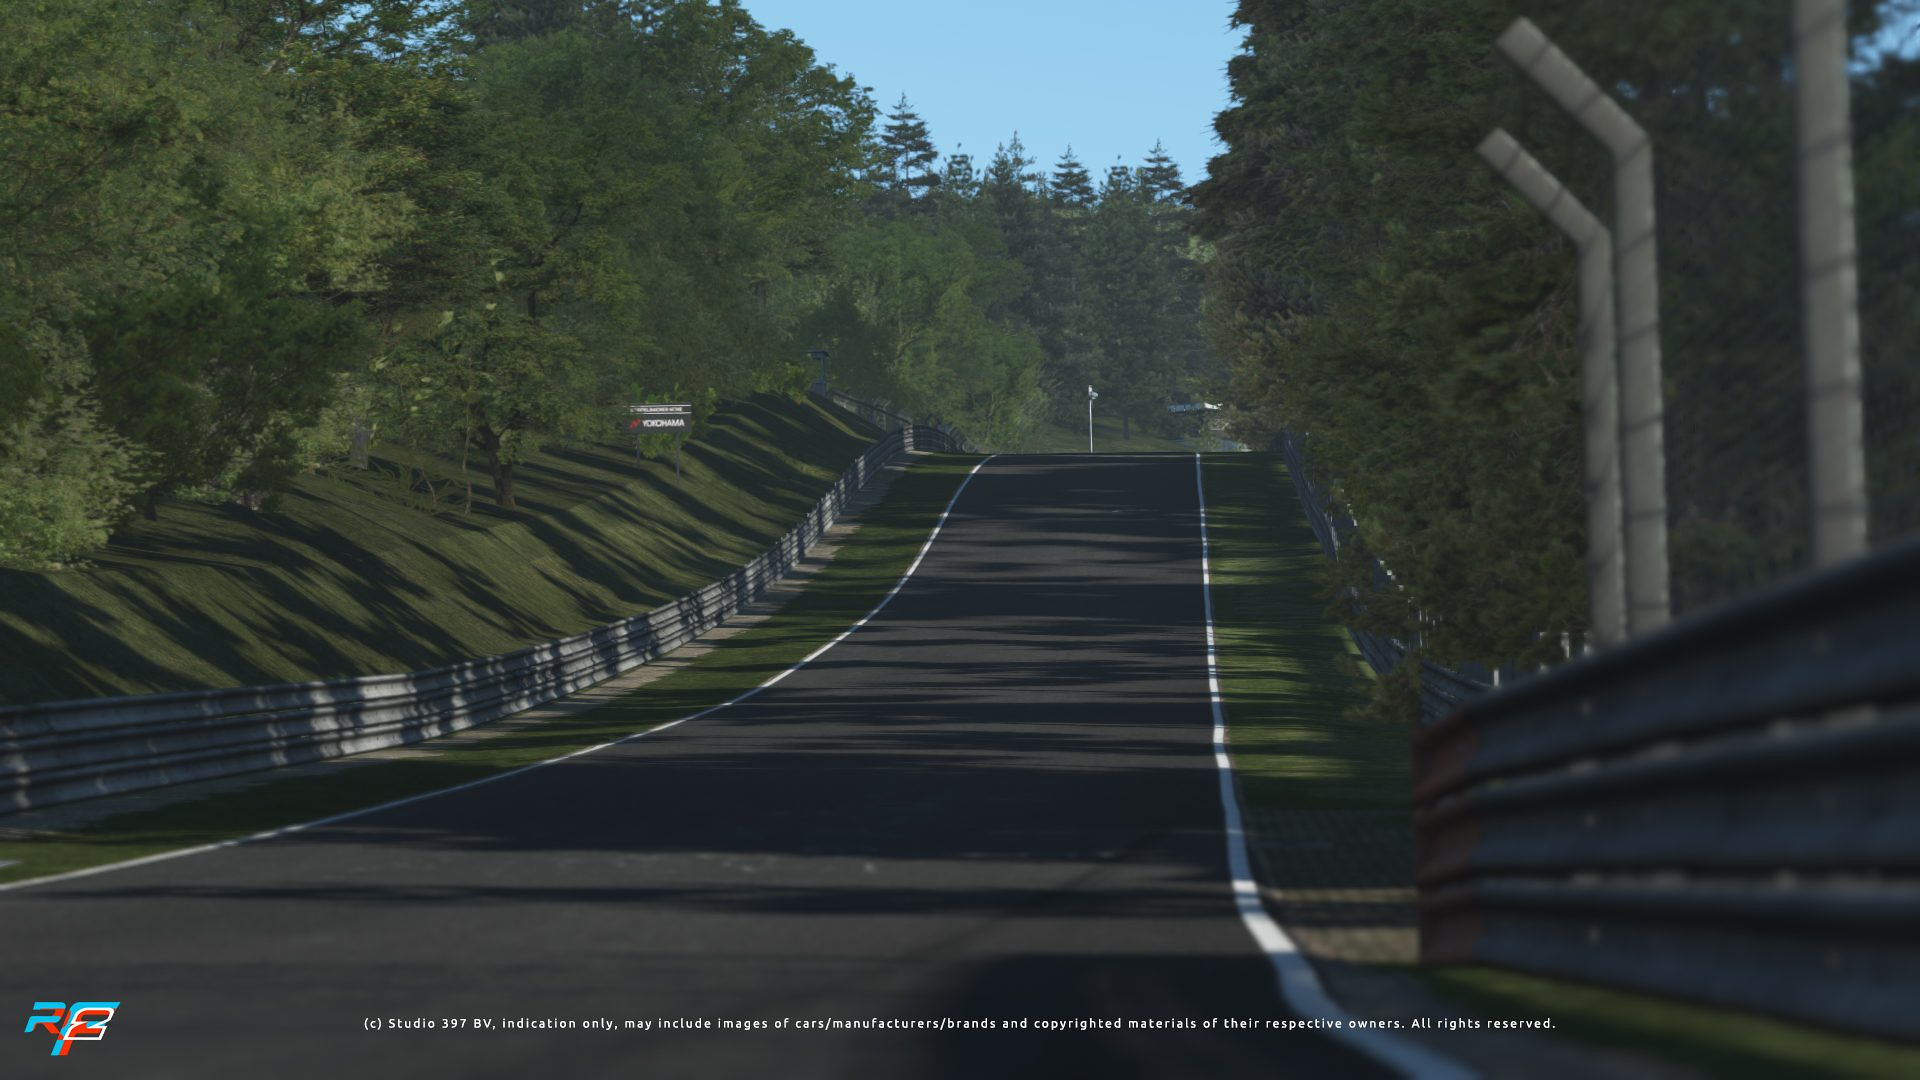 nordschleife_guide_06-1920x1080